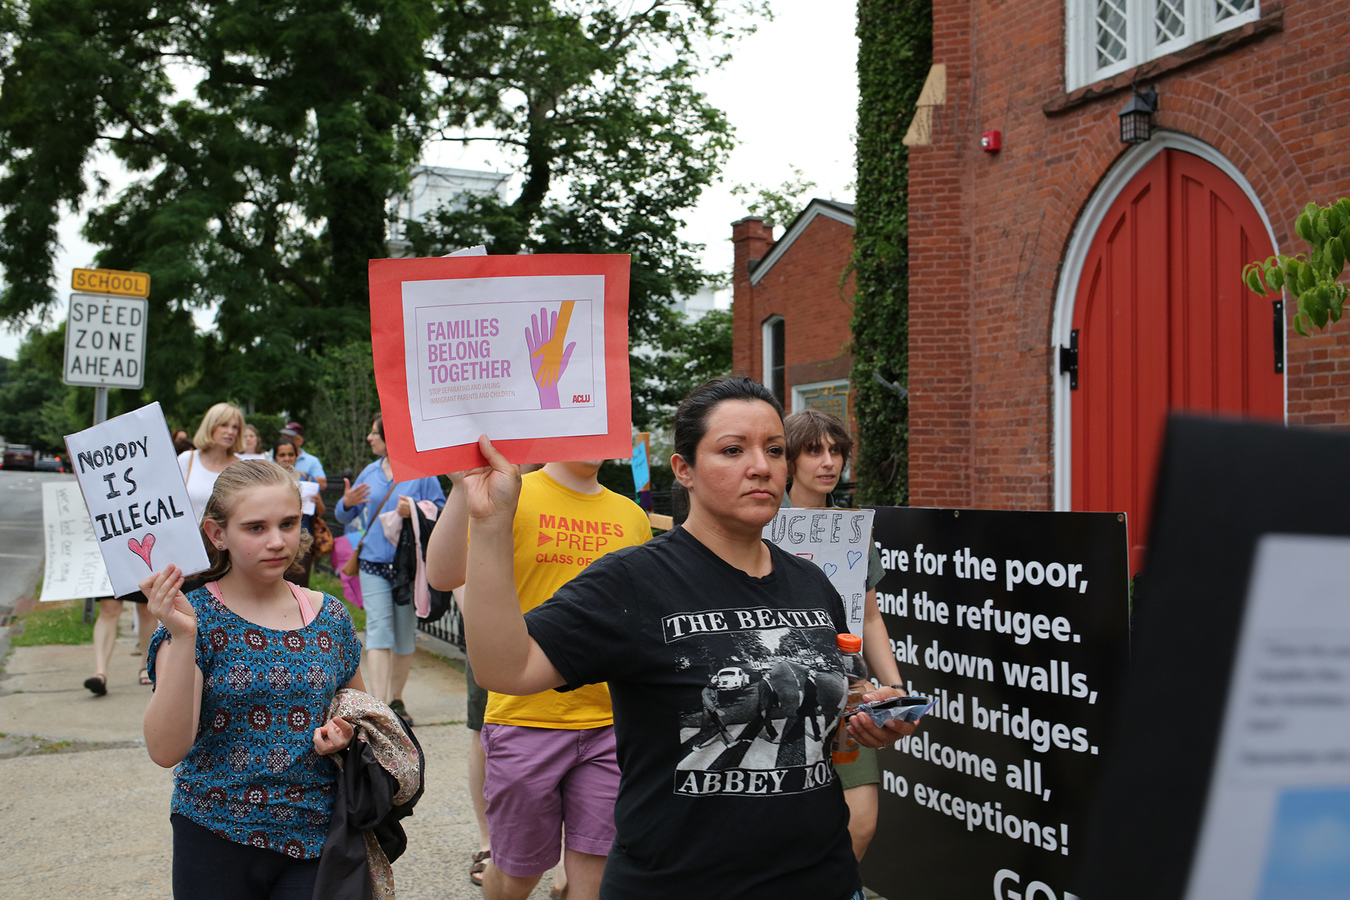 World Refugee Day Tarrytown, NY 6/20/18 World Refugee Day Tarrytown NY 6/20/18